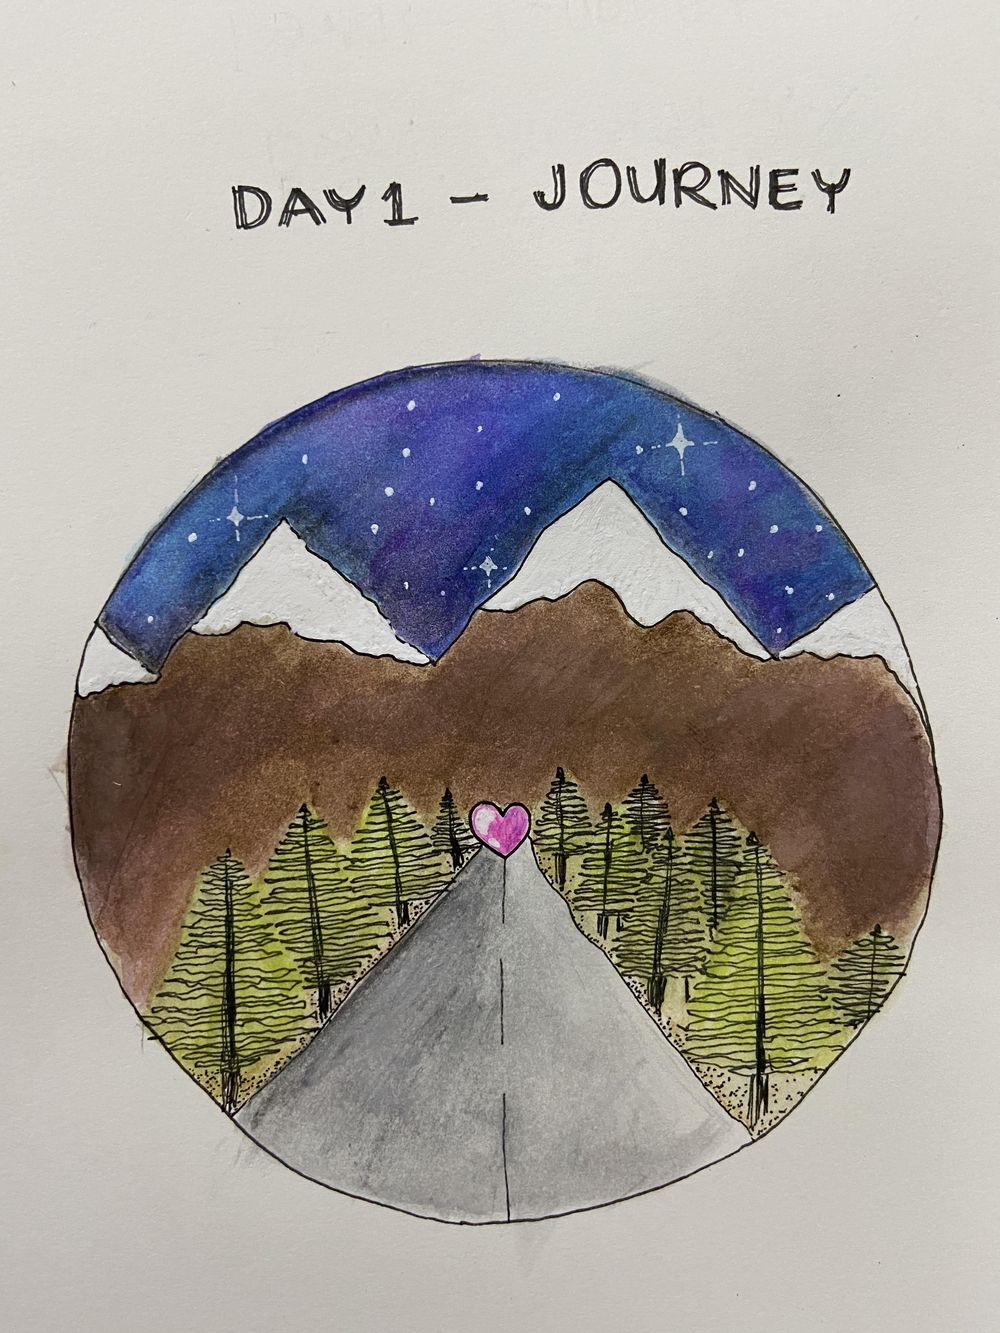 DAY 1 - Journey - image 3 - student project